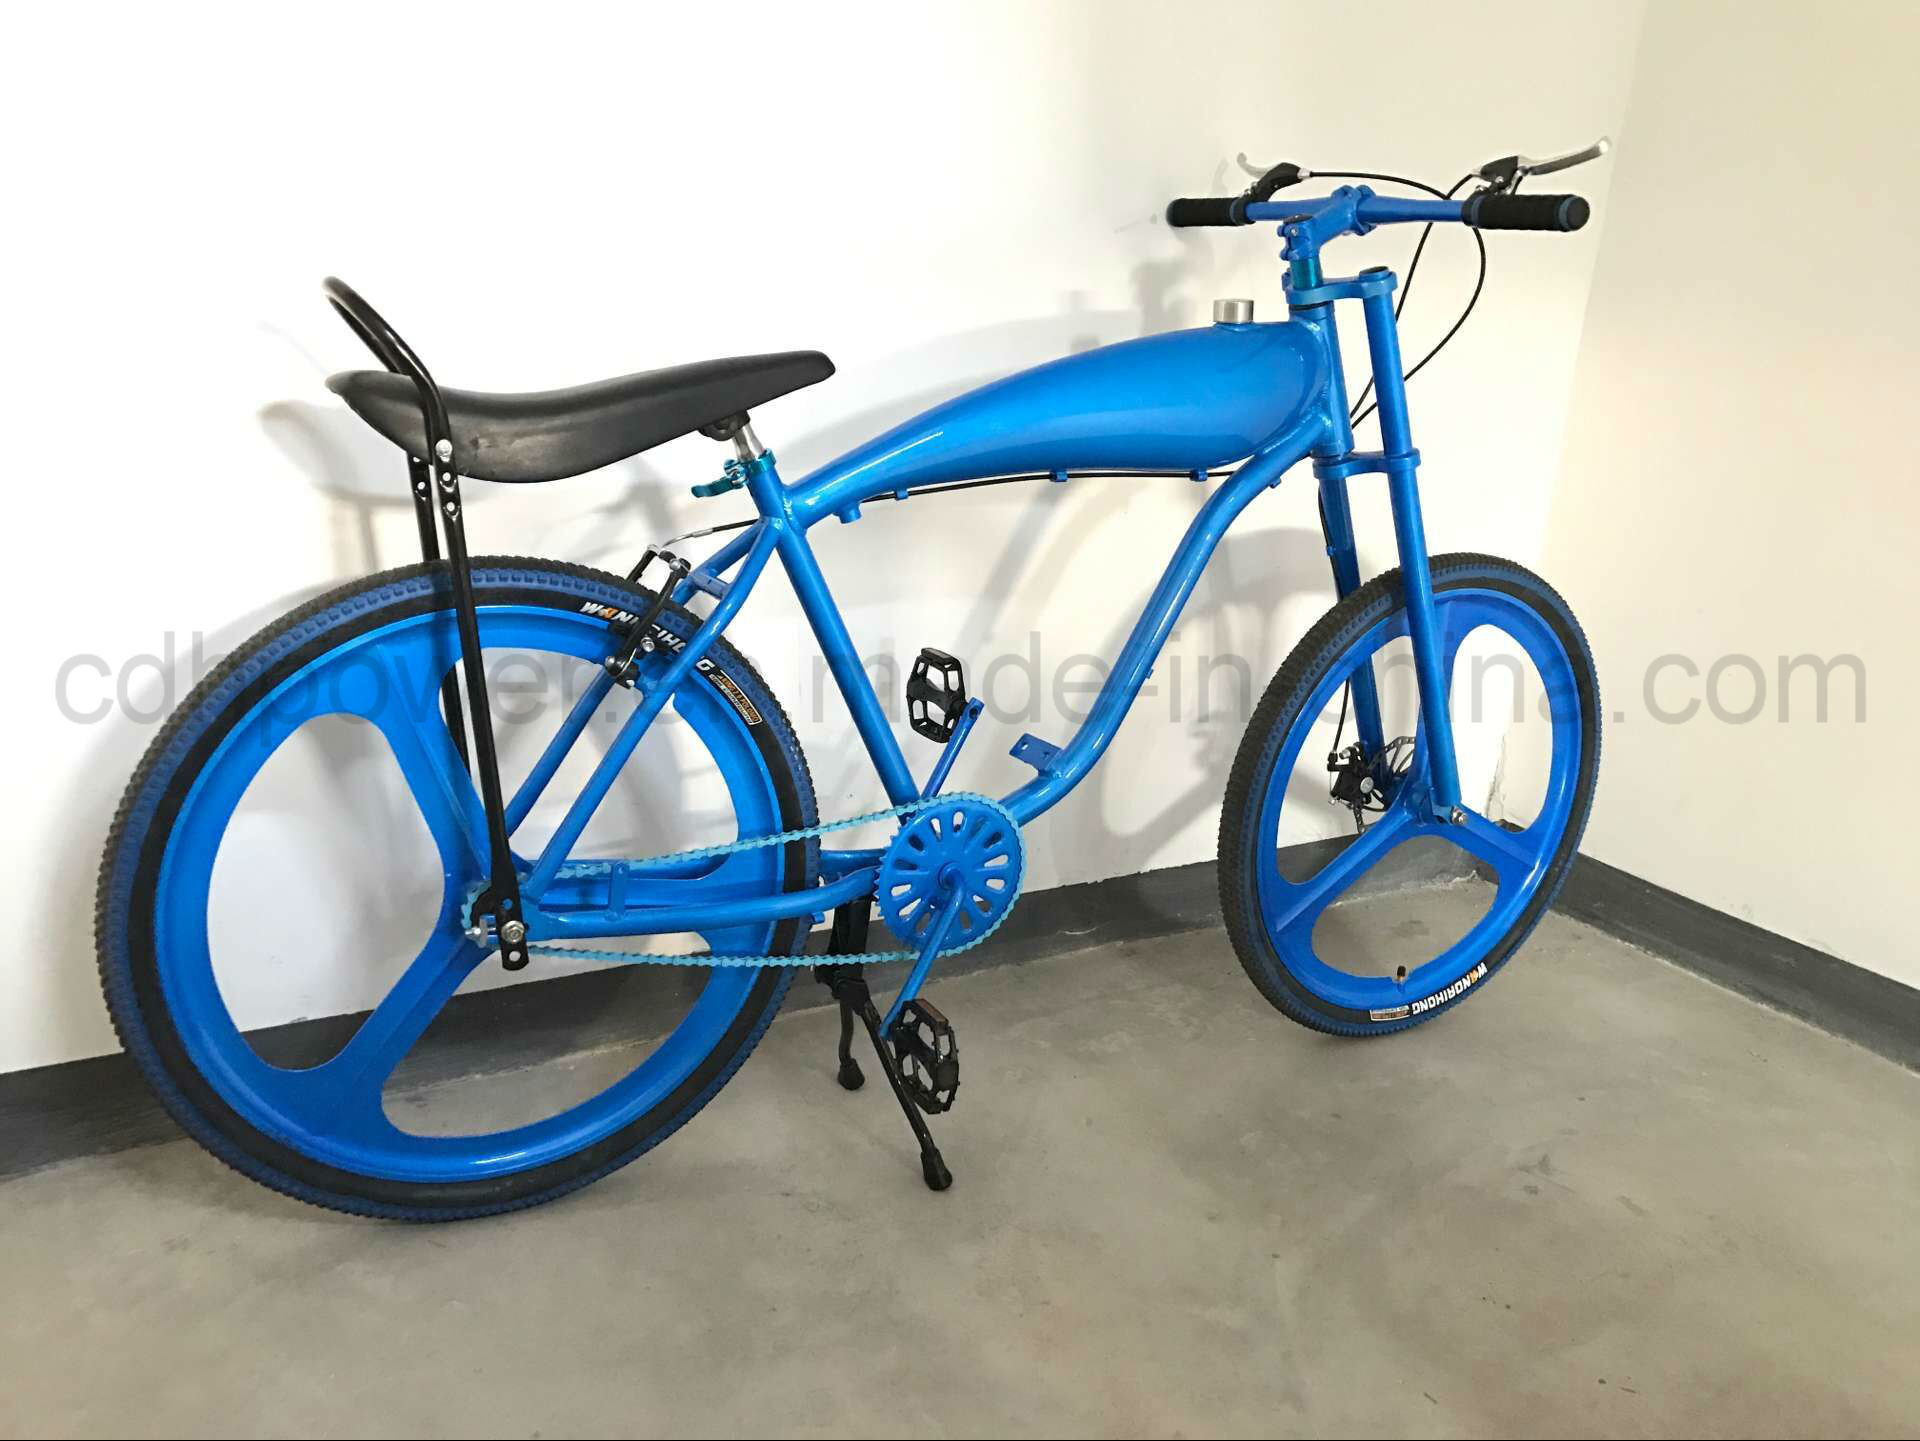 Motorized bicycle whole china 4k wallpapers Best frame for motorized bicycle